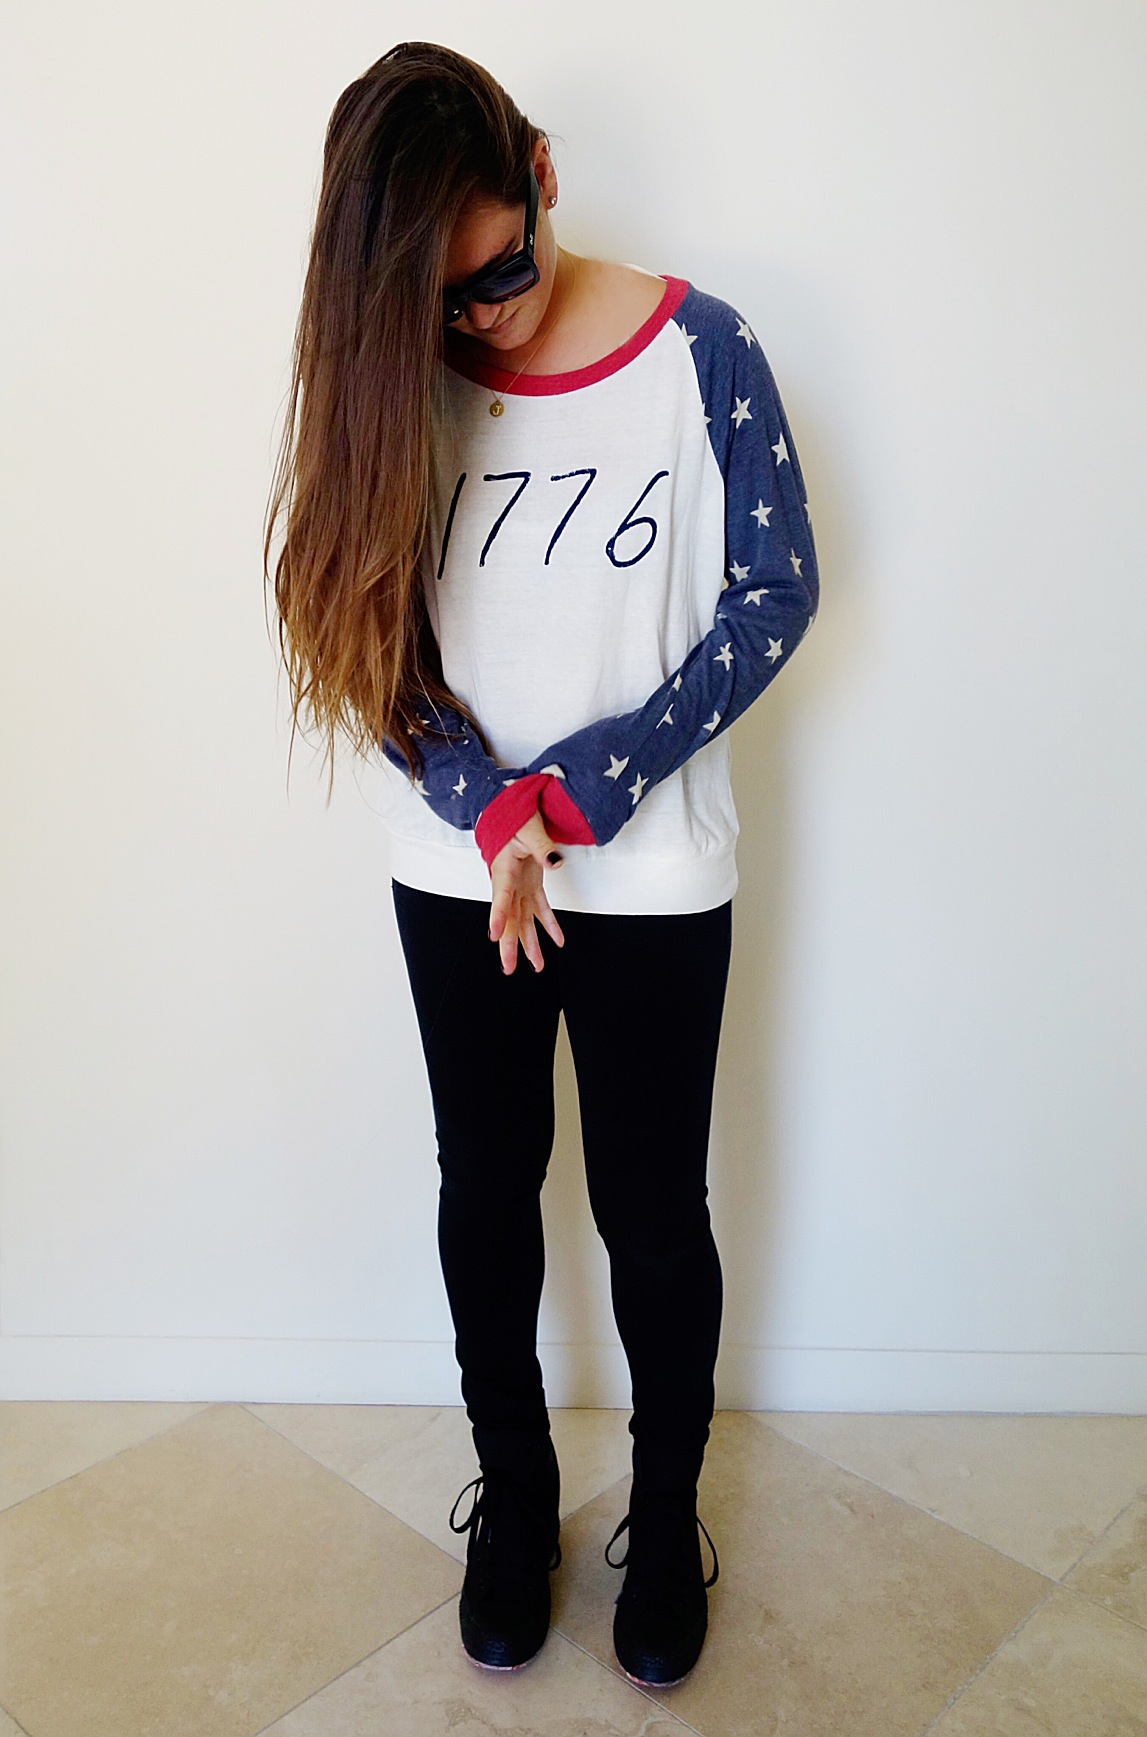 1776 shirt. Show your American pride!